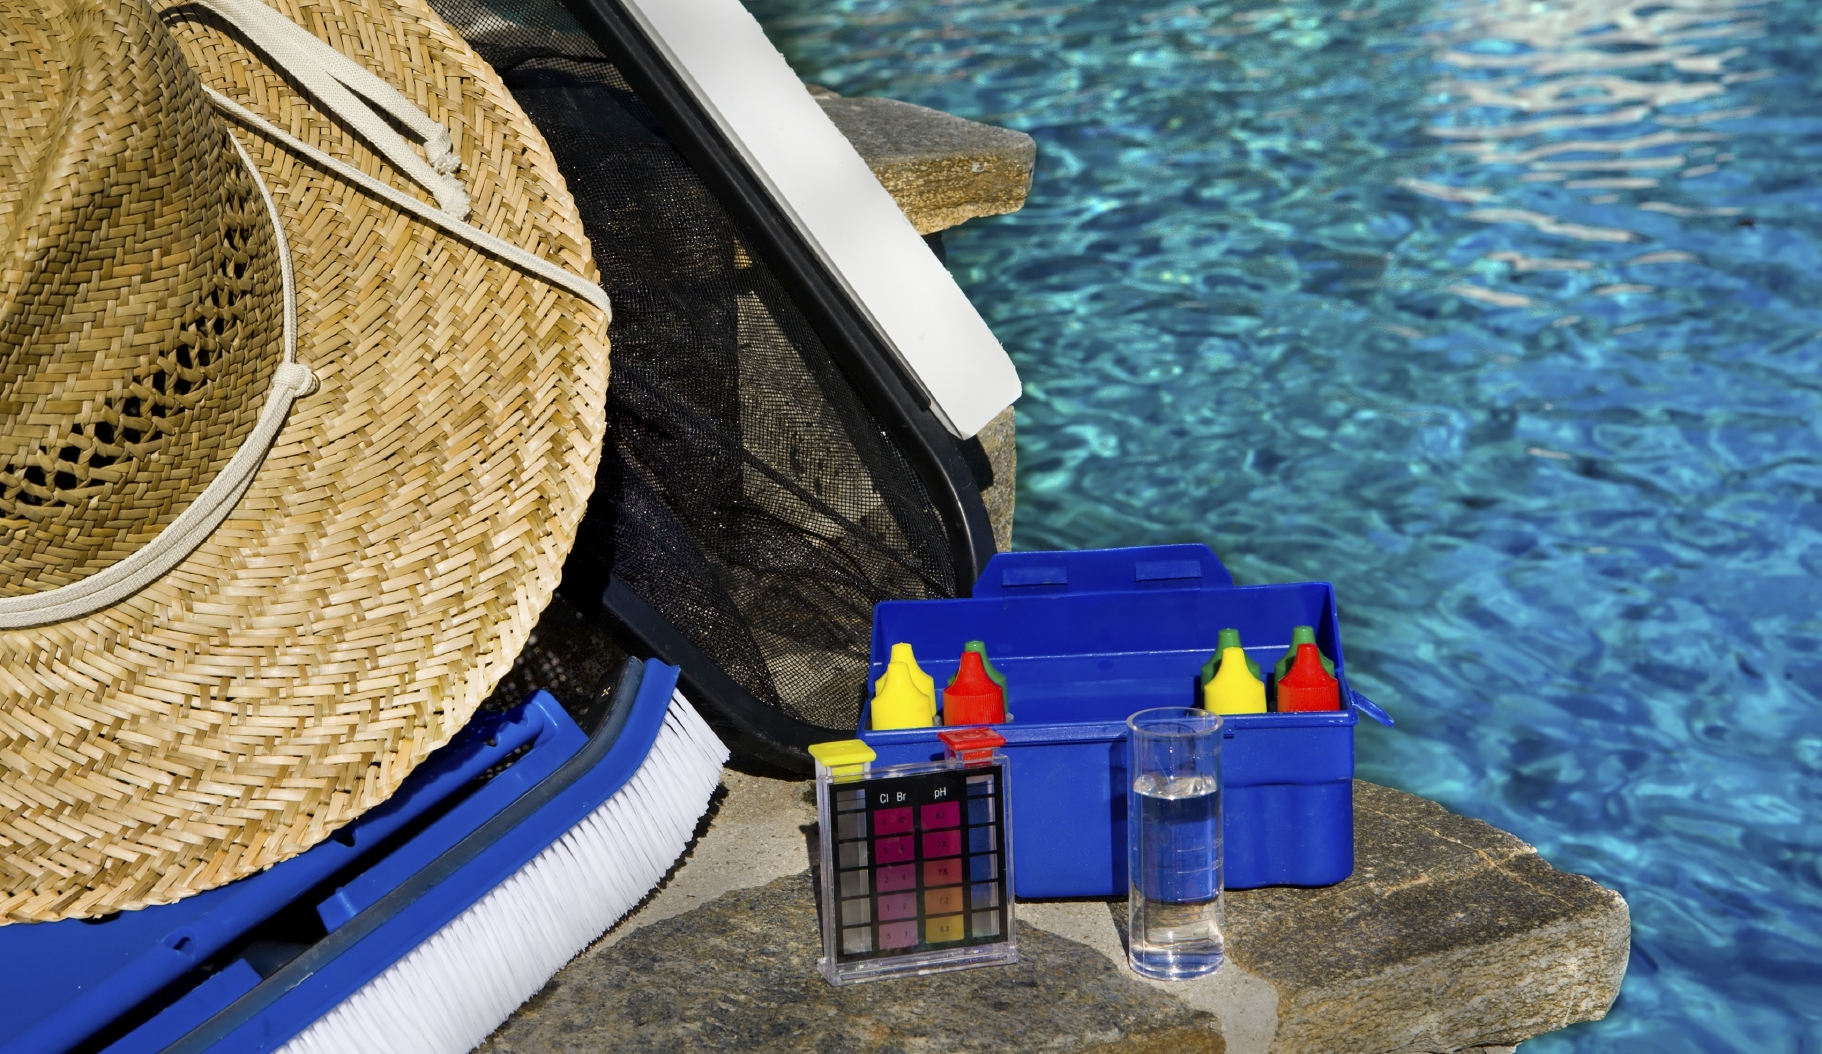 You may be damaging your immune system with each swim. Worse yet, you may also be increasing your risk for developing cancer. Is your pool safe?